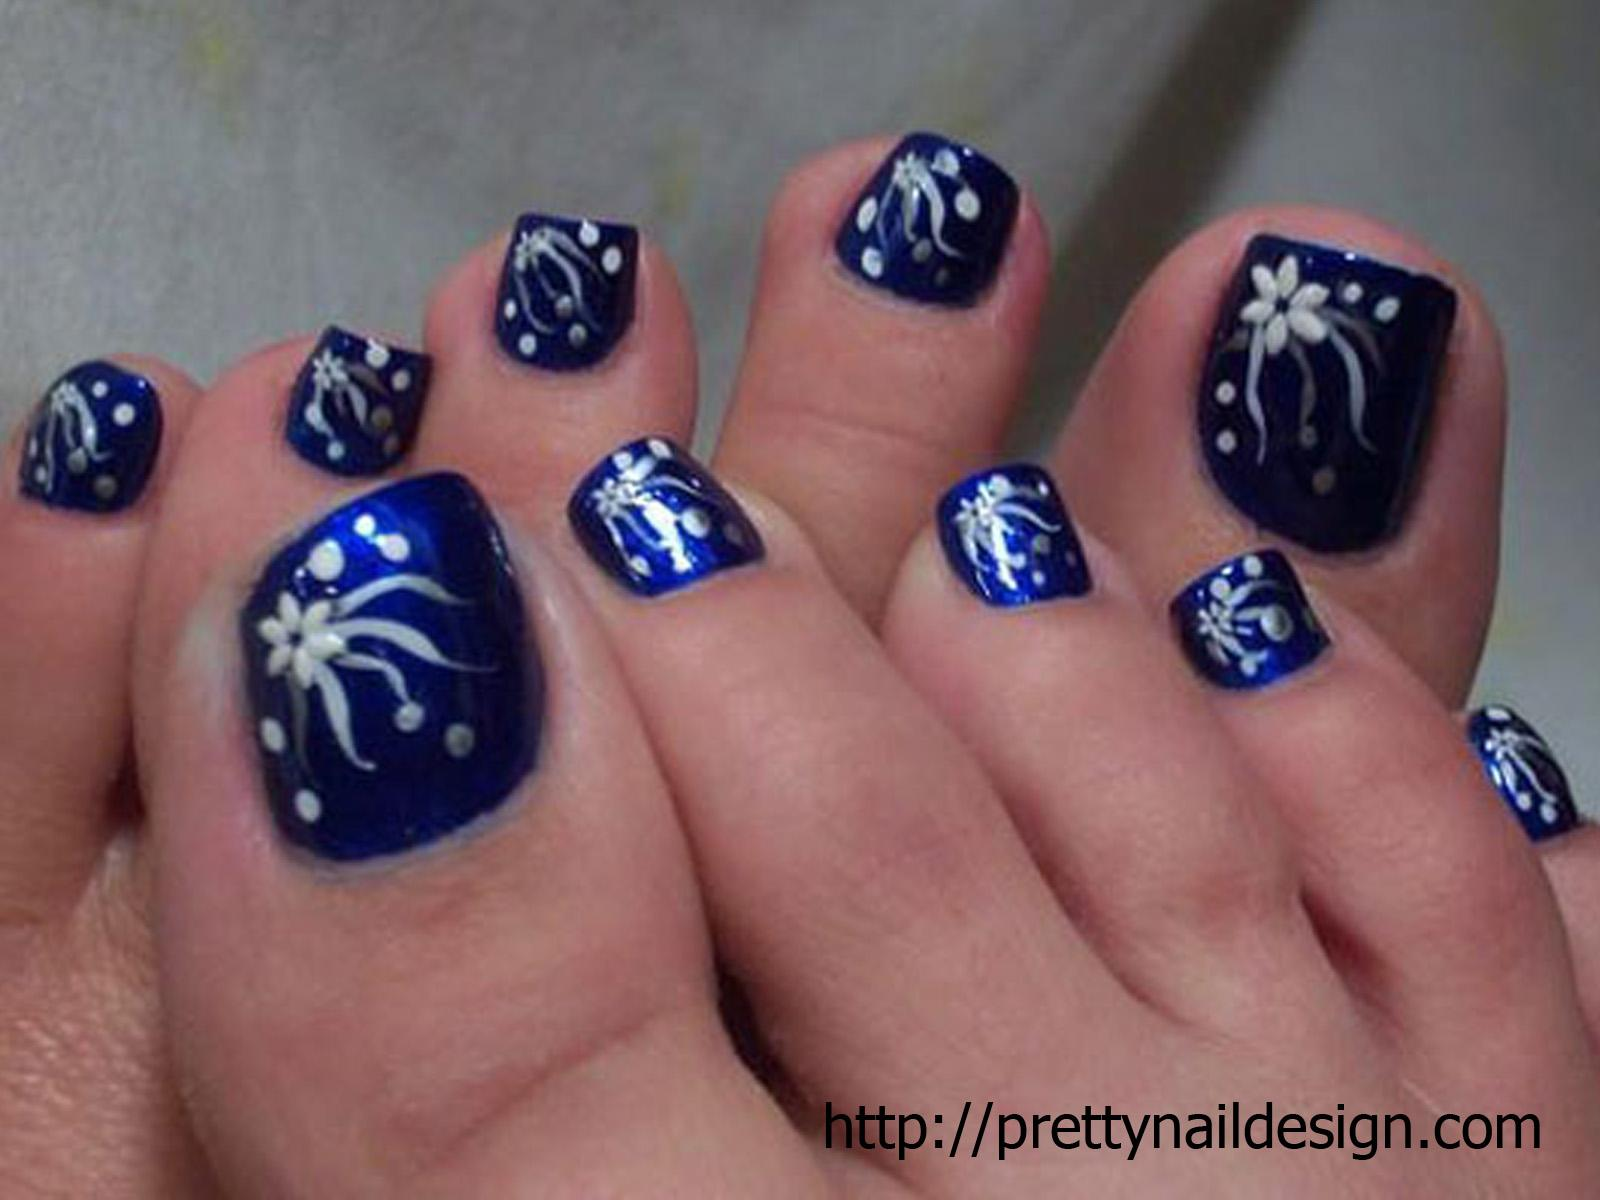 Dise os para las u as de los pies fotos paperblog - Cute nail art designs to do at home ...